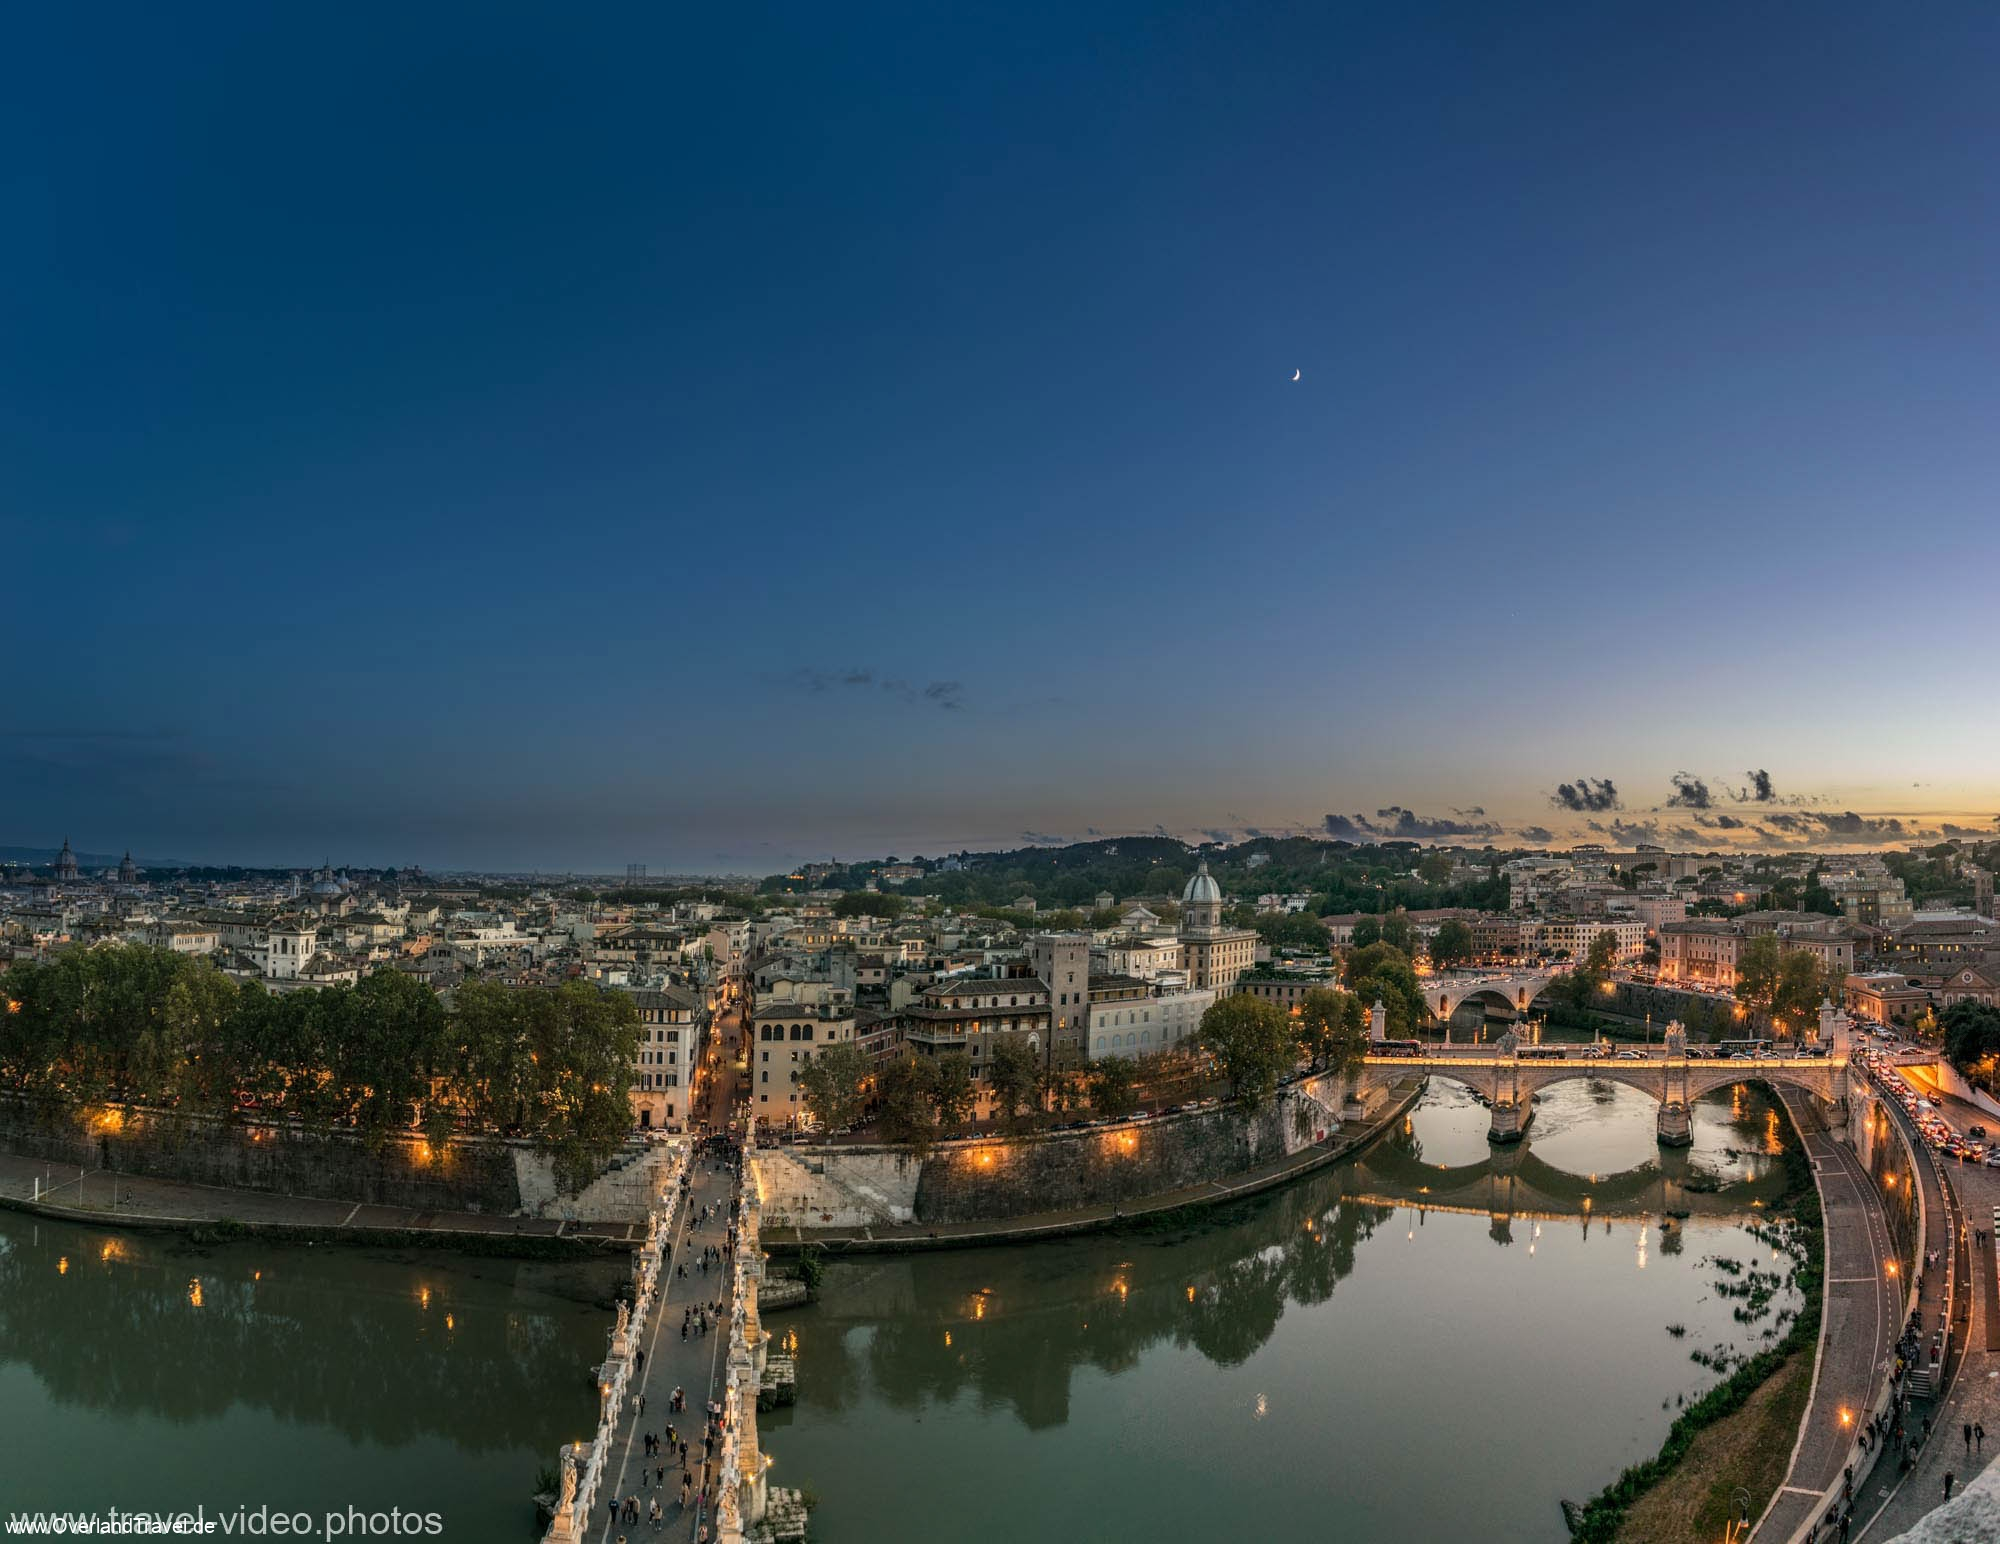 A panorama from the roof of the Castel Sant'Angelo down to the river tiber